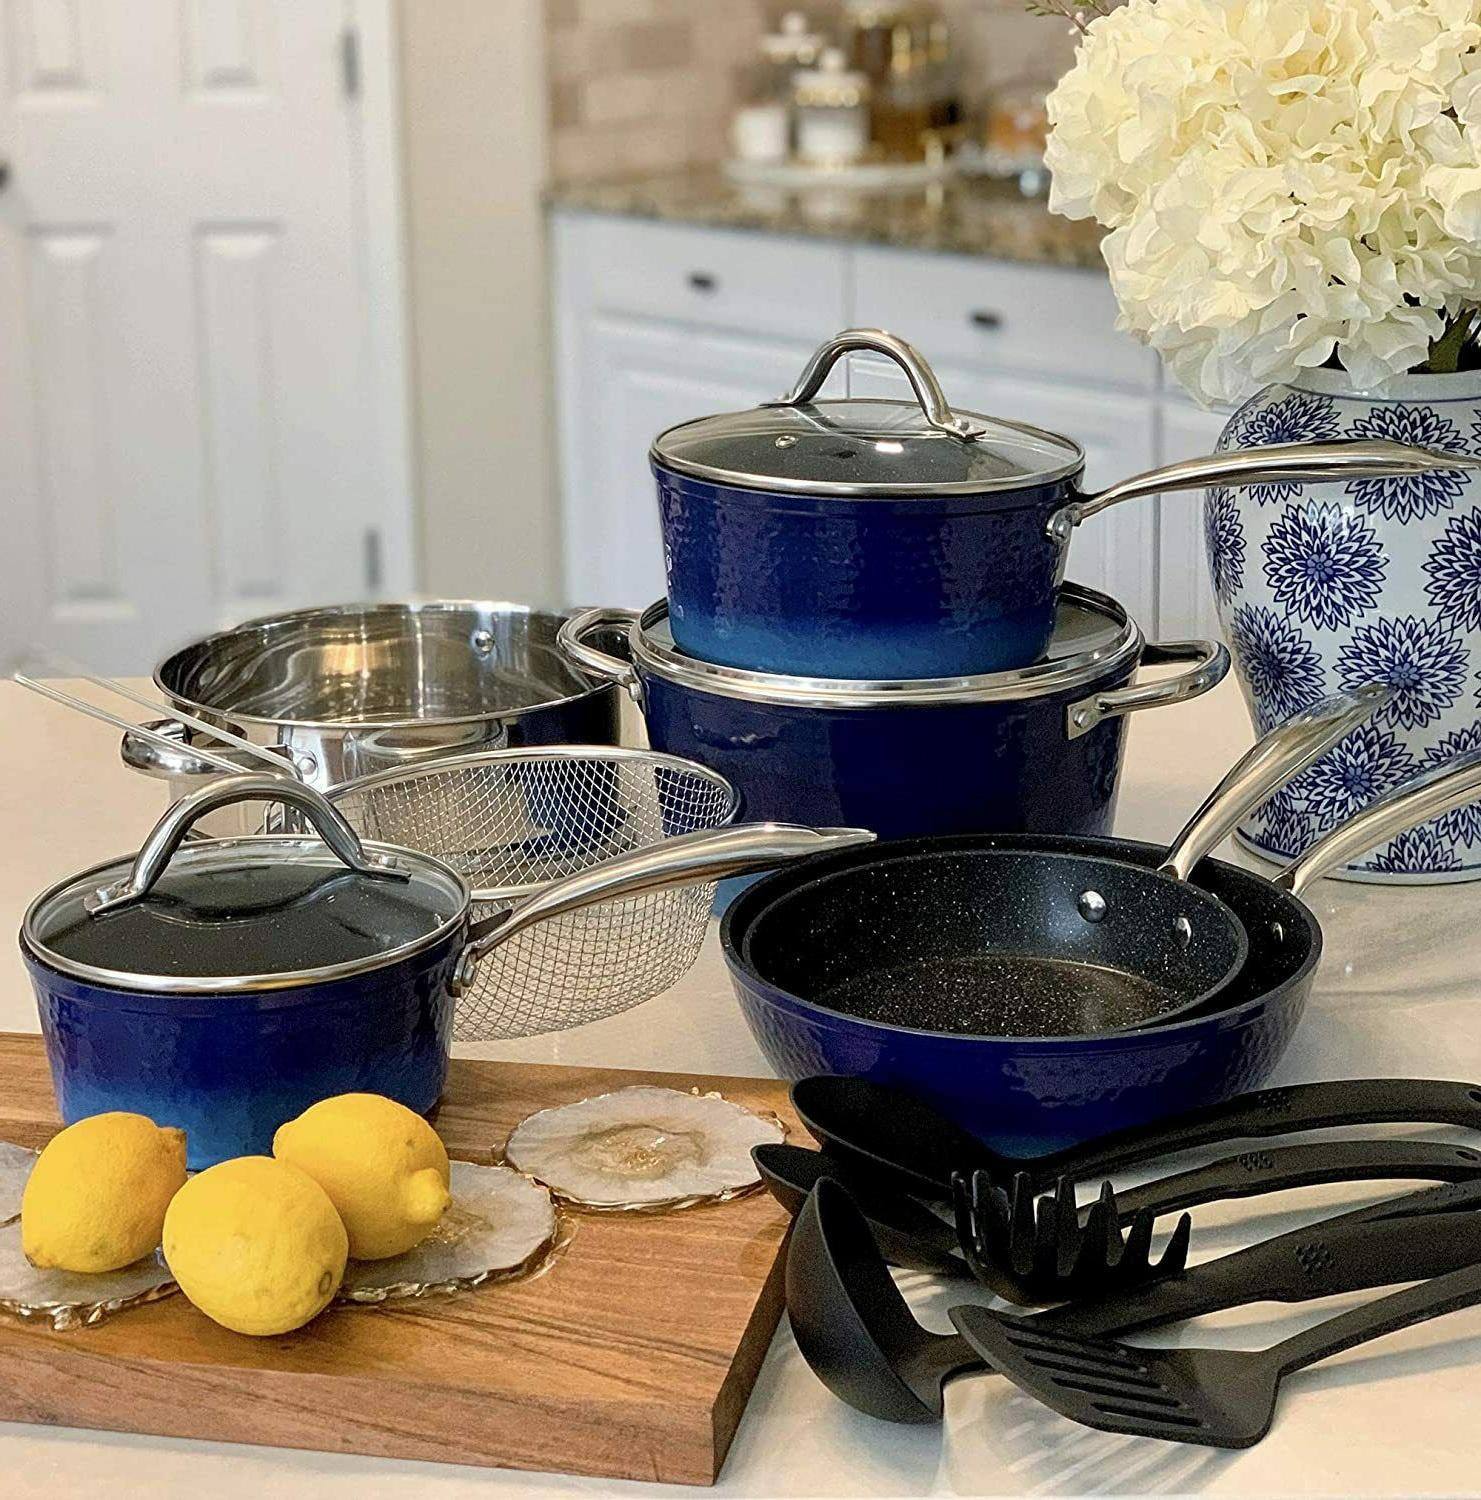 Chefhome 15 Hammered Cookware Set Coated and Pans Set